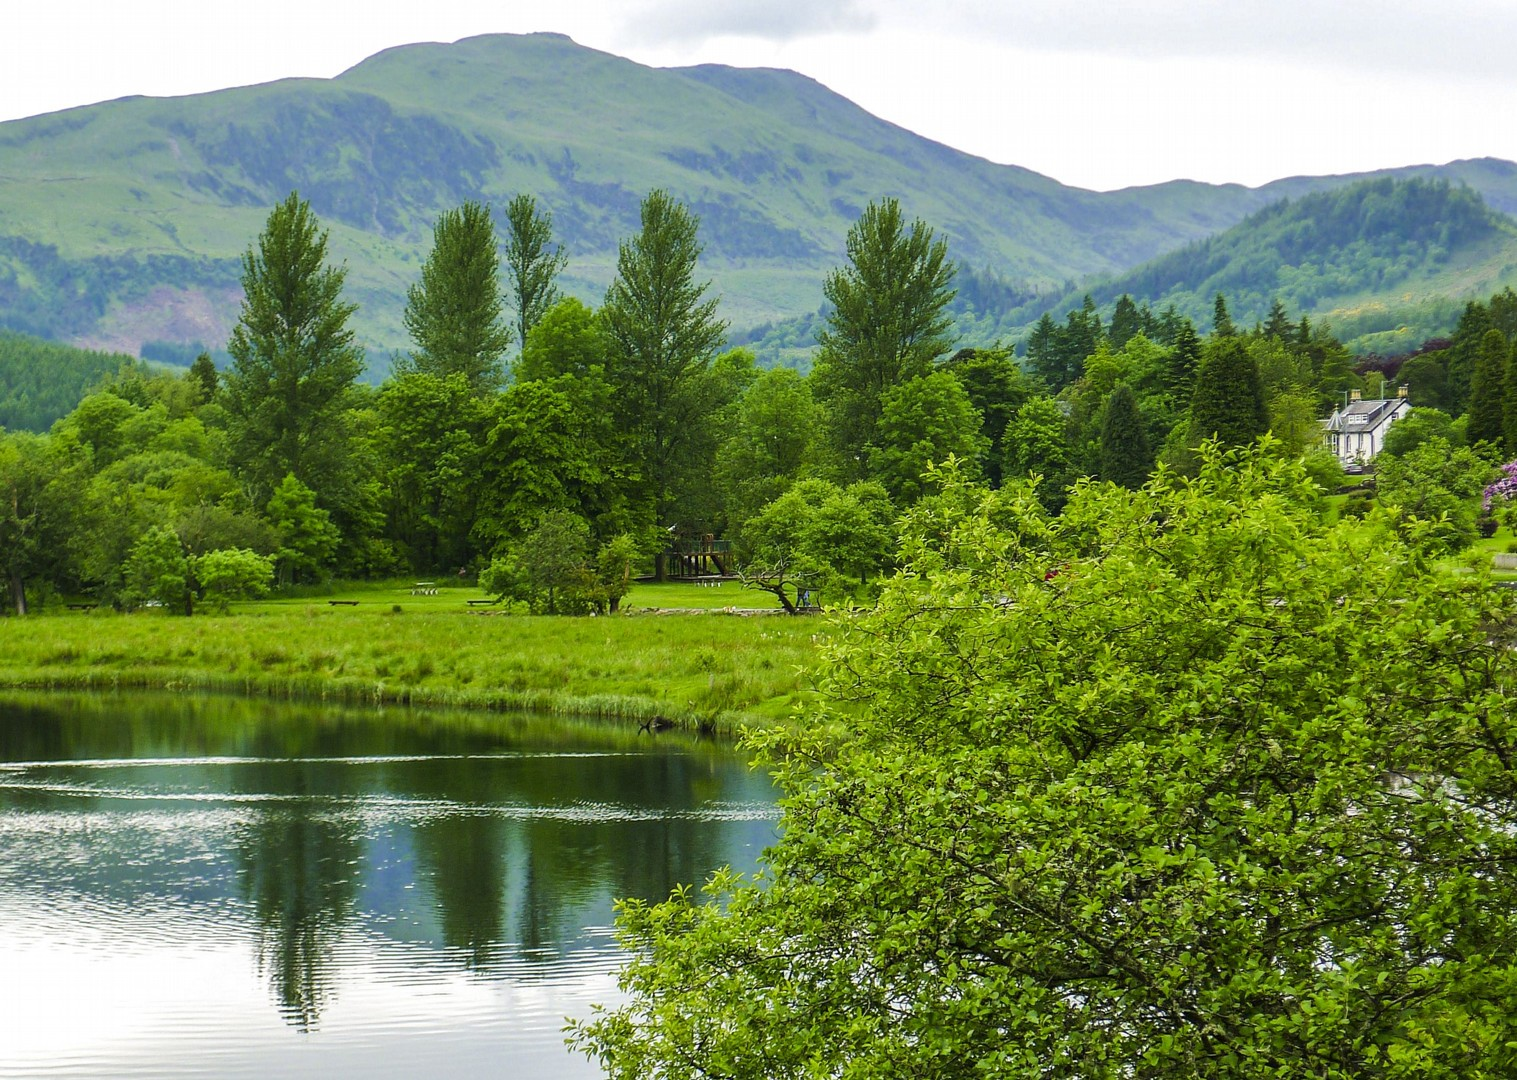 scottish-cycling-mountains-lakes-rivers-whiskey-distillery-bike-holiday.jpg - UK - Scotland - Lochs and Glens - Self-Guided Leisure Cycling Holiday - Leisure Cycling